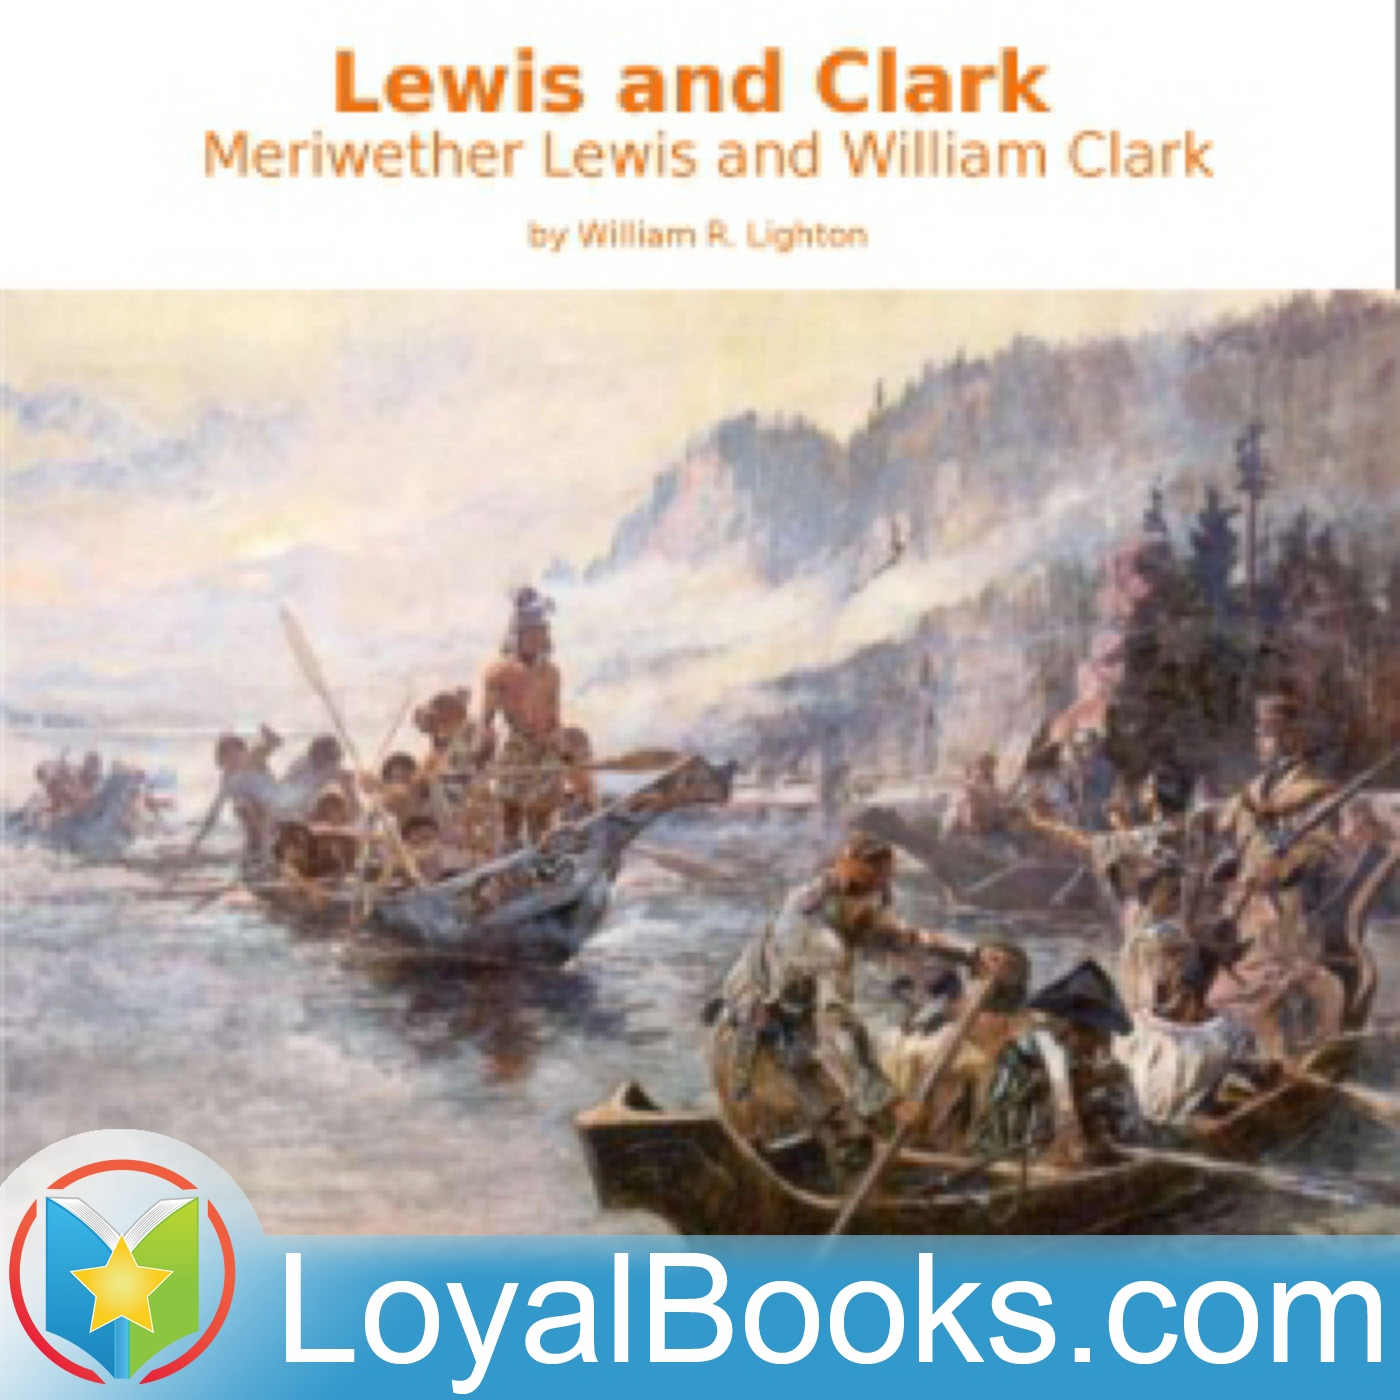 <![CDATA[Lewis and Clark: Meriwether Lewis and William Clark by William R. Lighton]]>